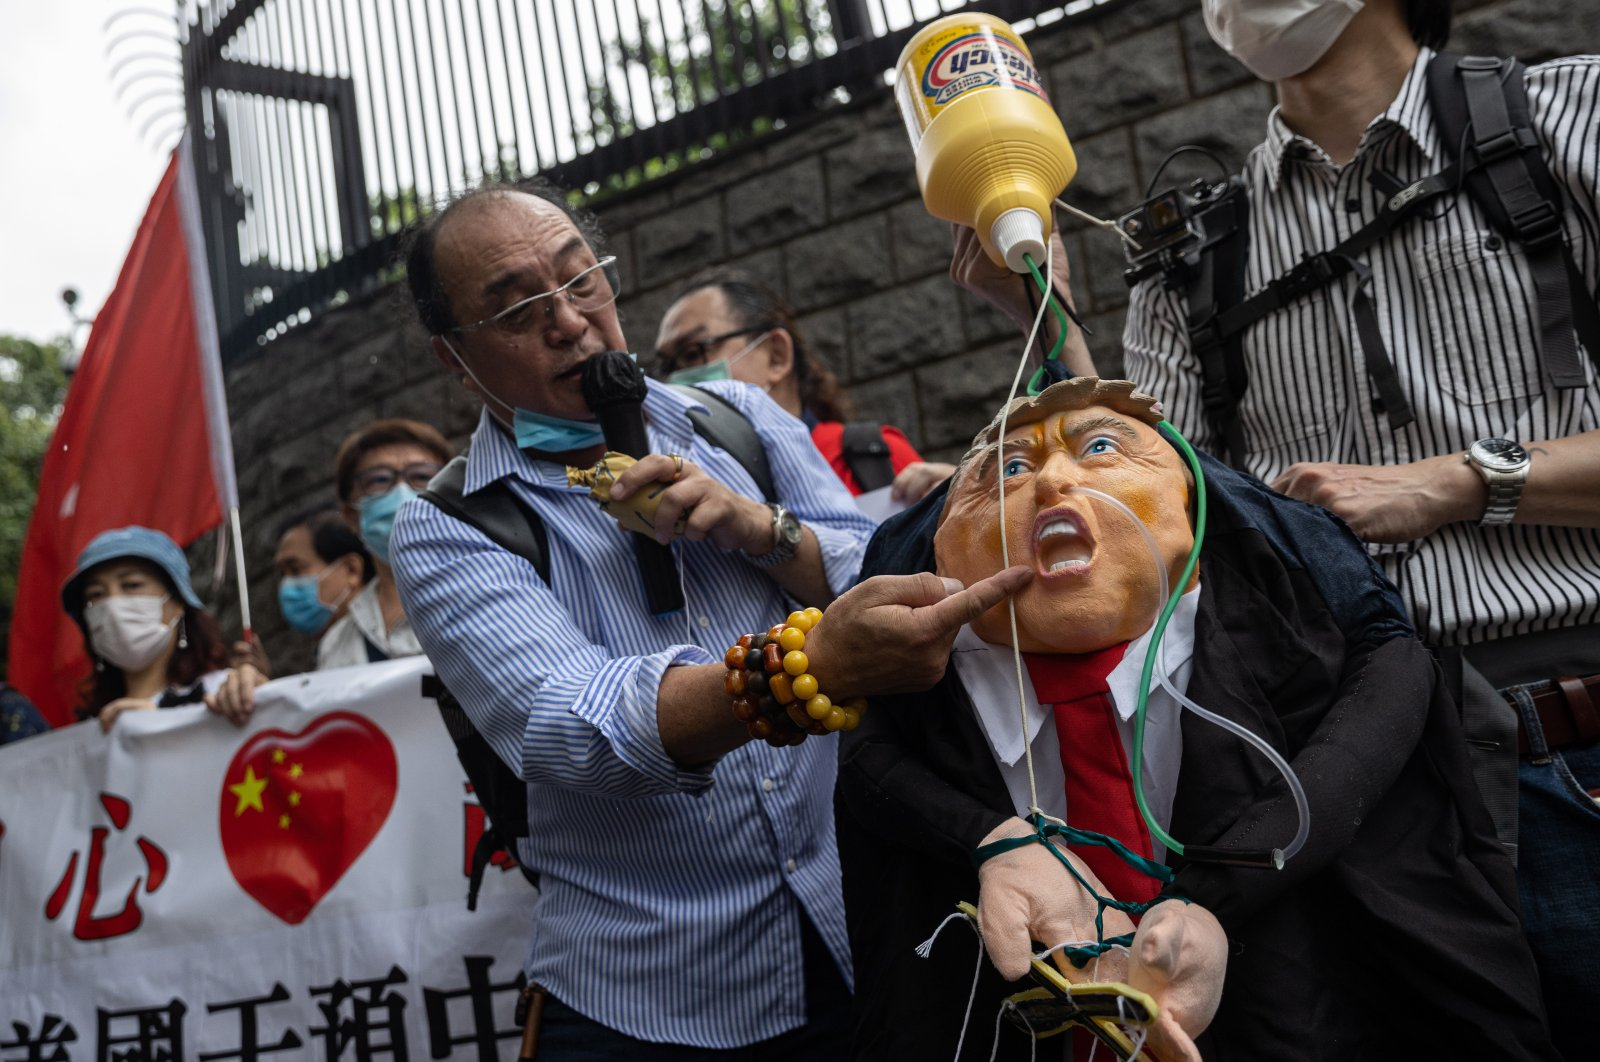 Protesters display banners and a doll of Donald Trump hooked up to a bottle of bleach during a rally outside the U.S. Consulate General in Hong Kong, China, May 30, 2020. (EPA Photo)